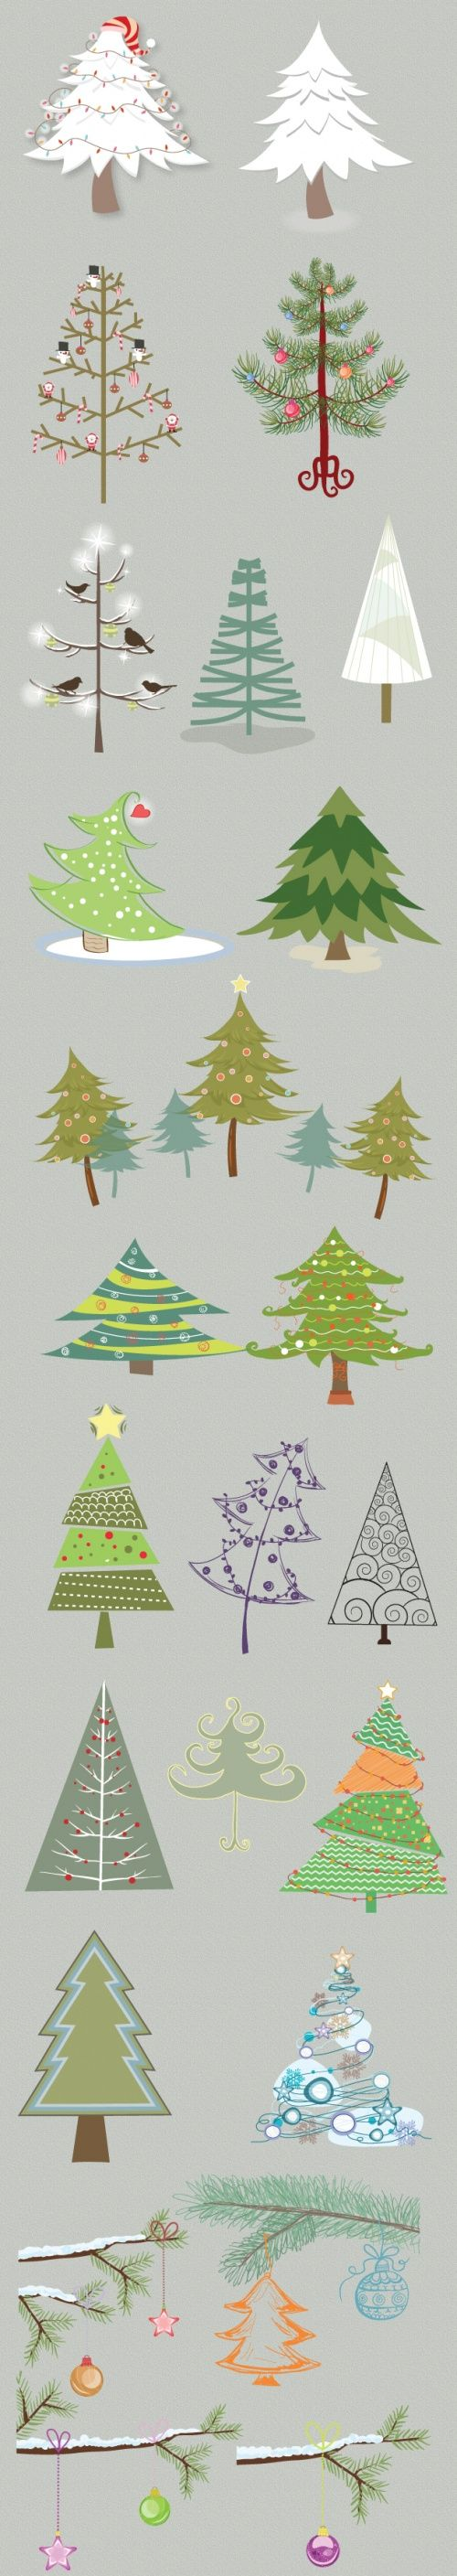 Vectorial Christmas trees.